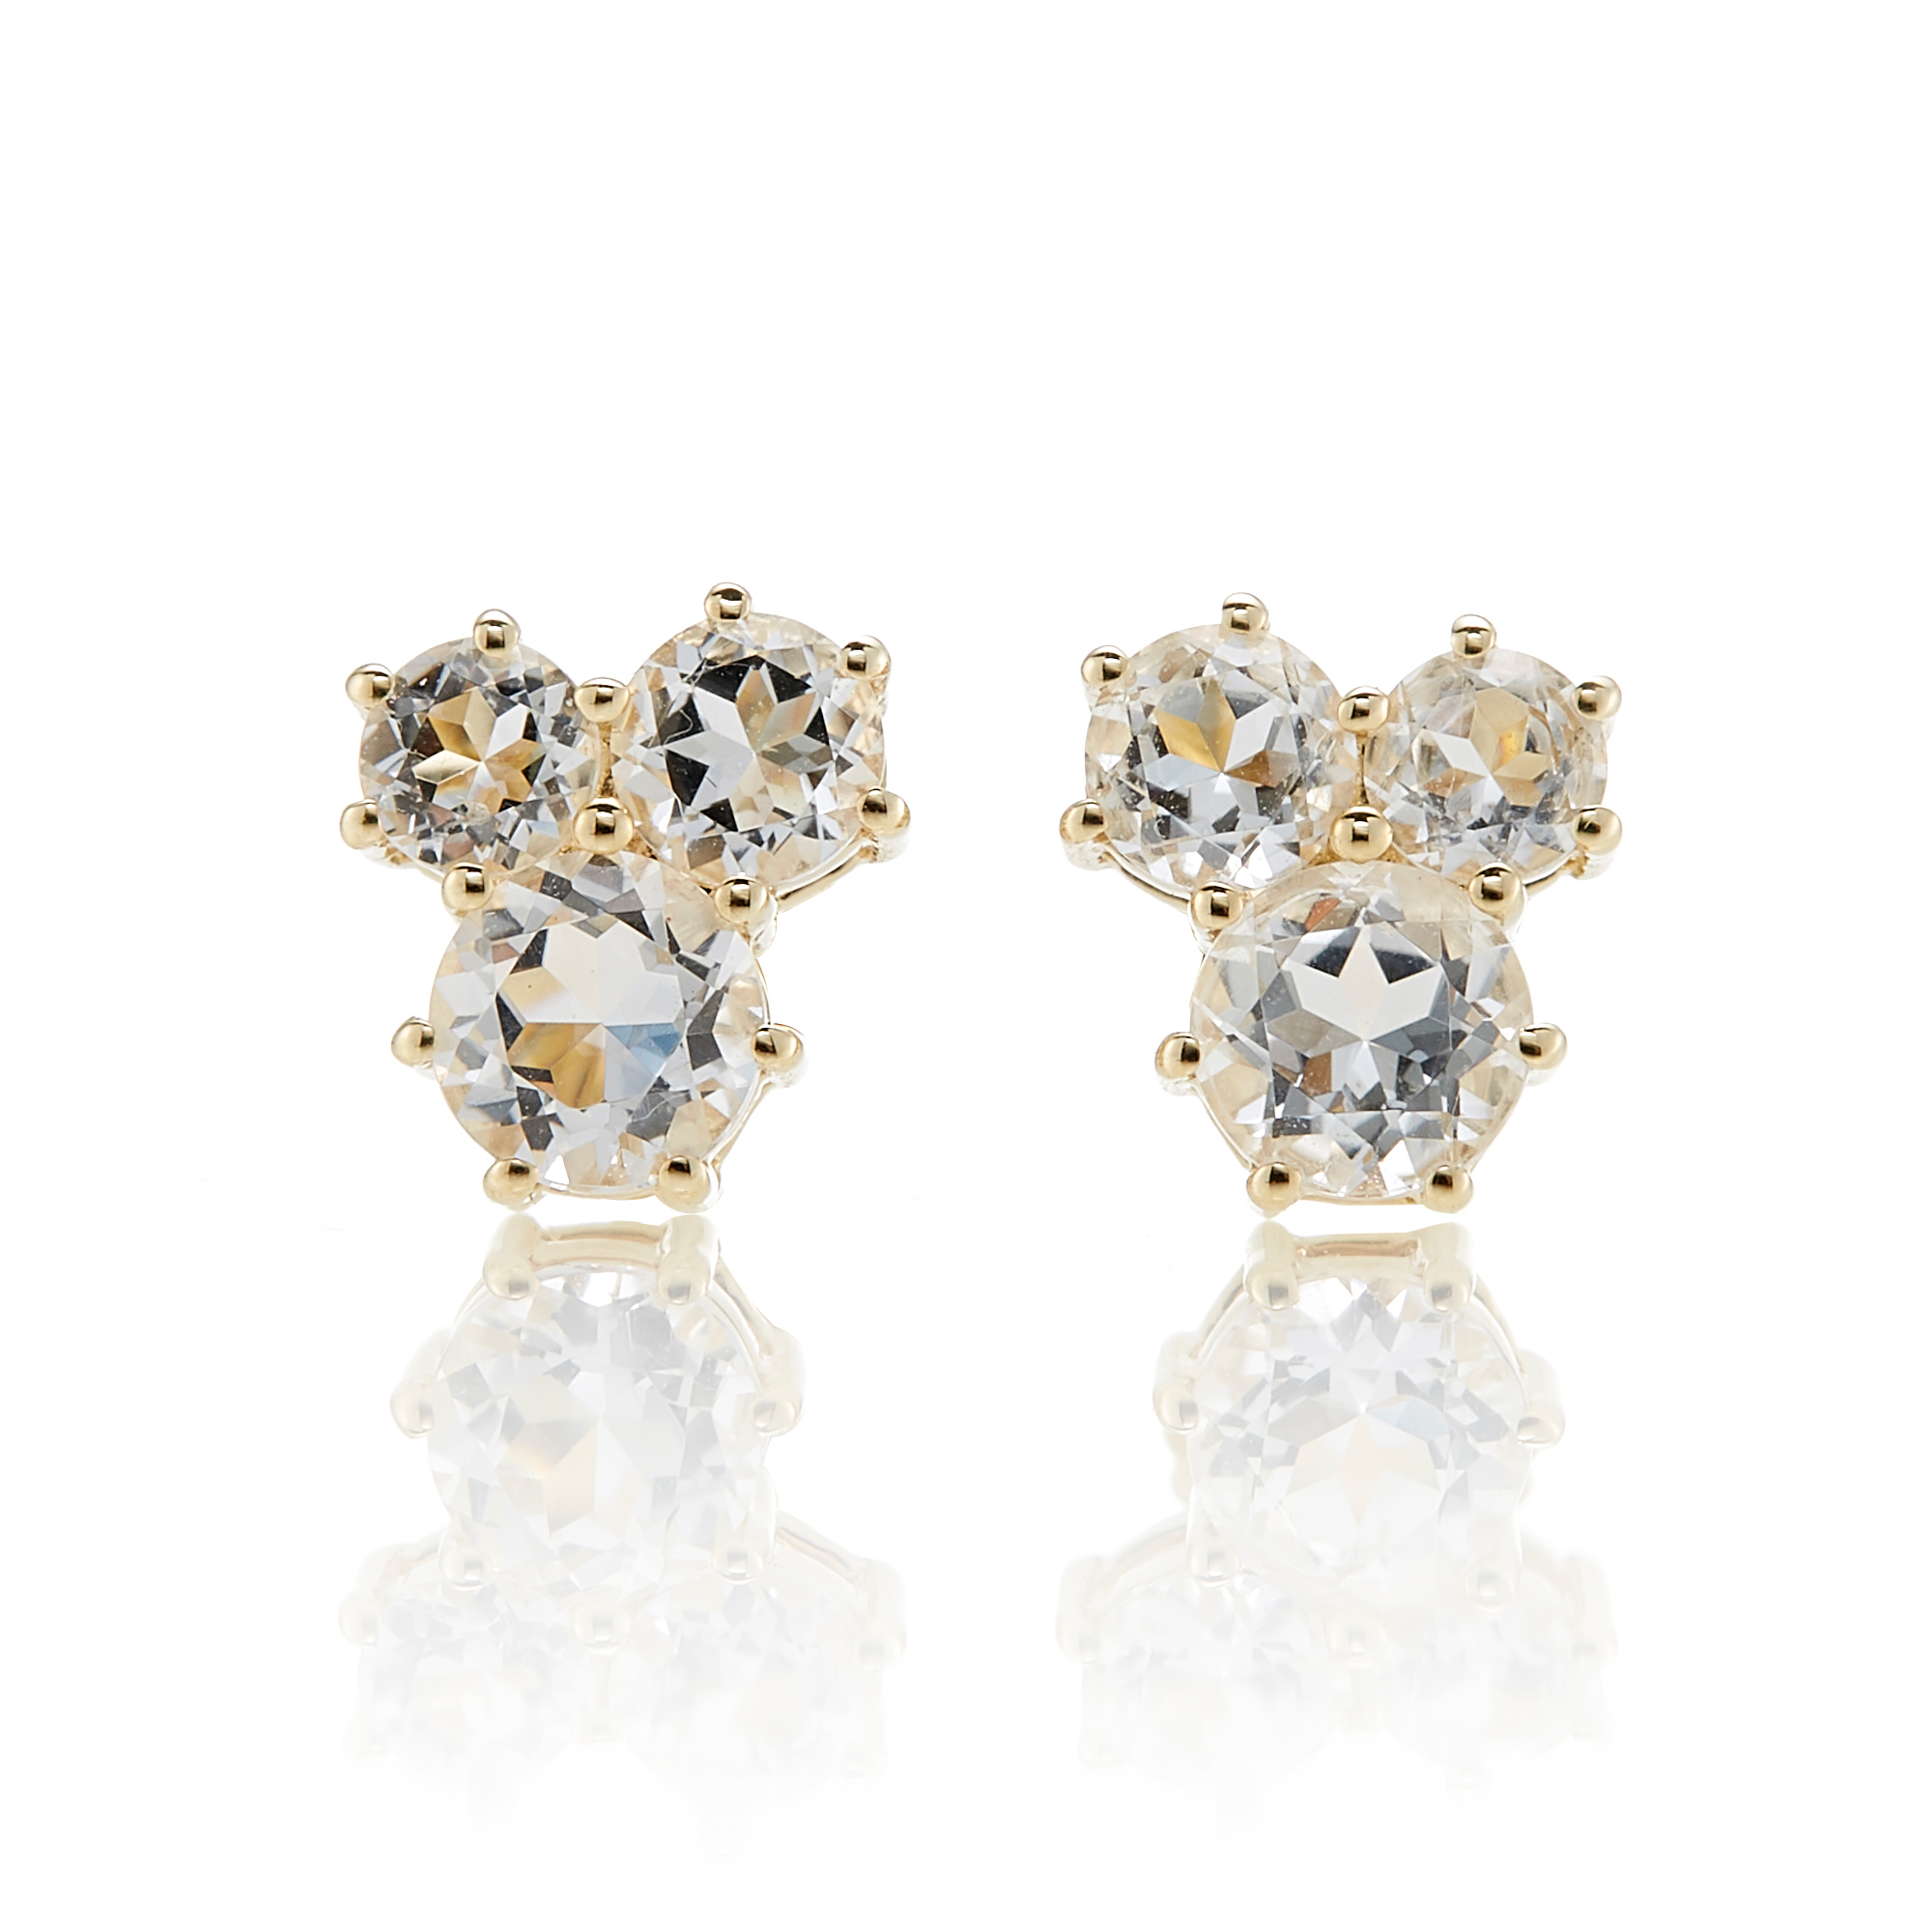 Gump's White Quartz Trio Cluster Earrings